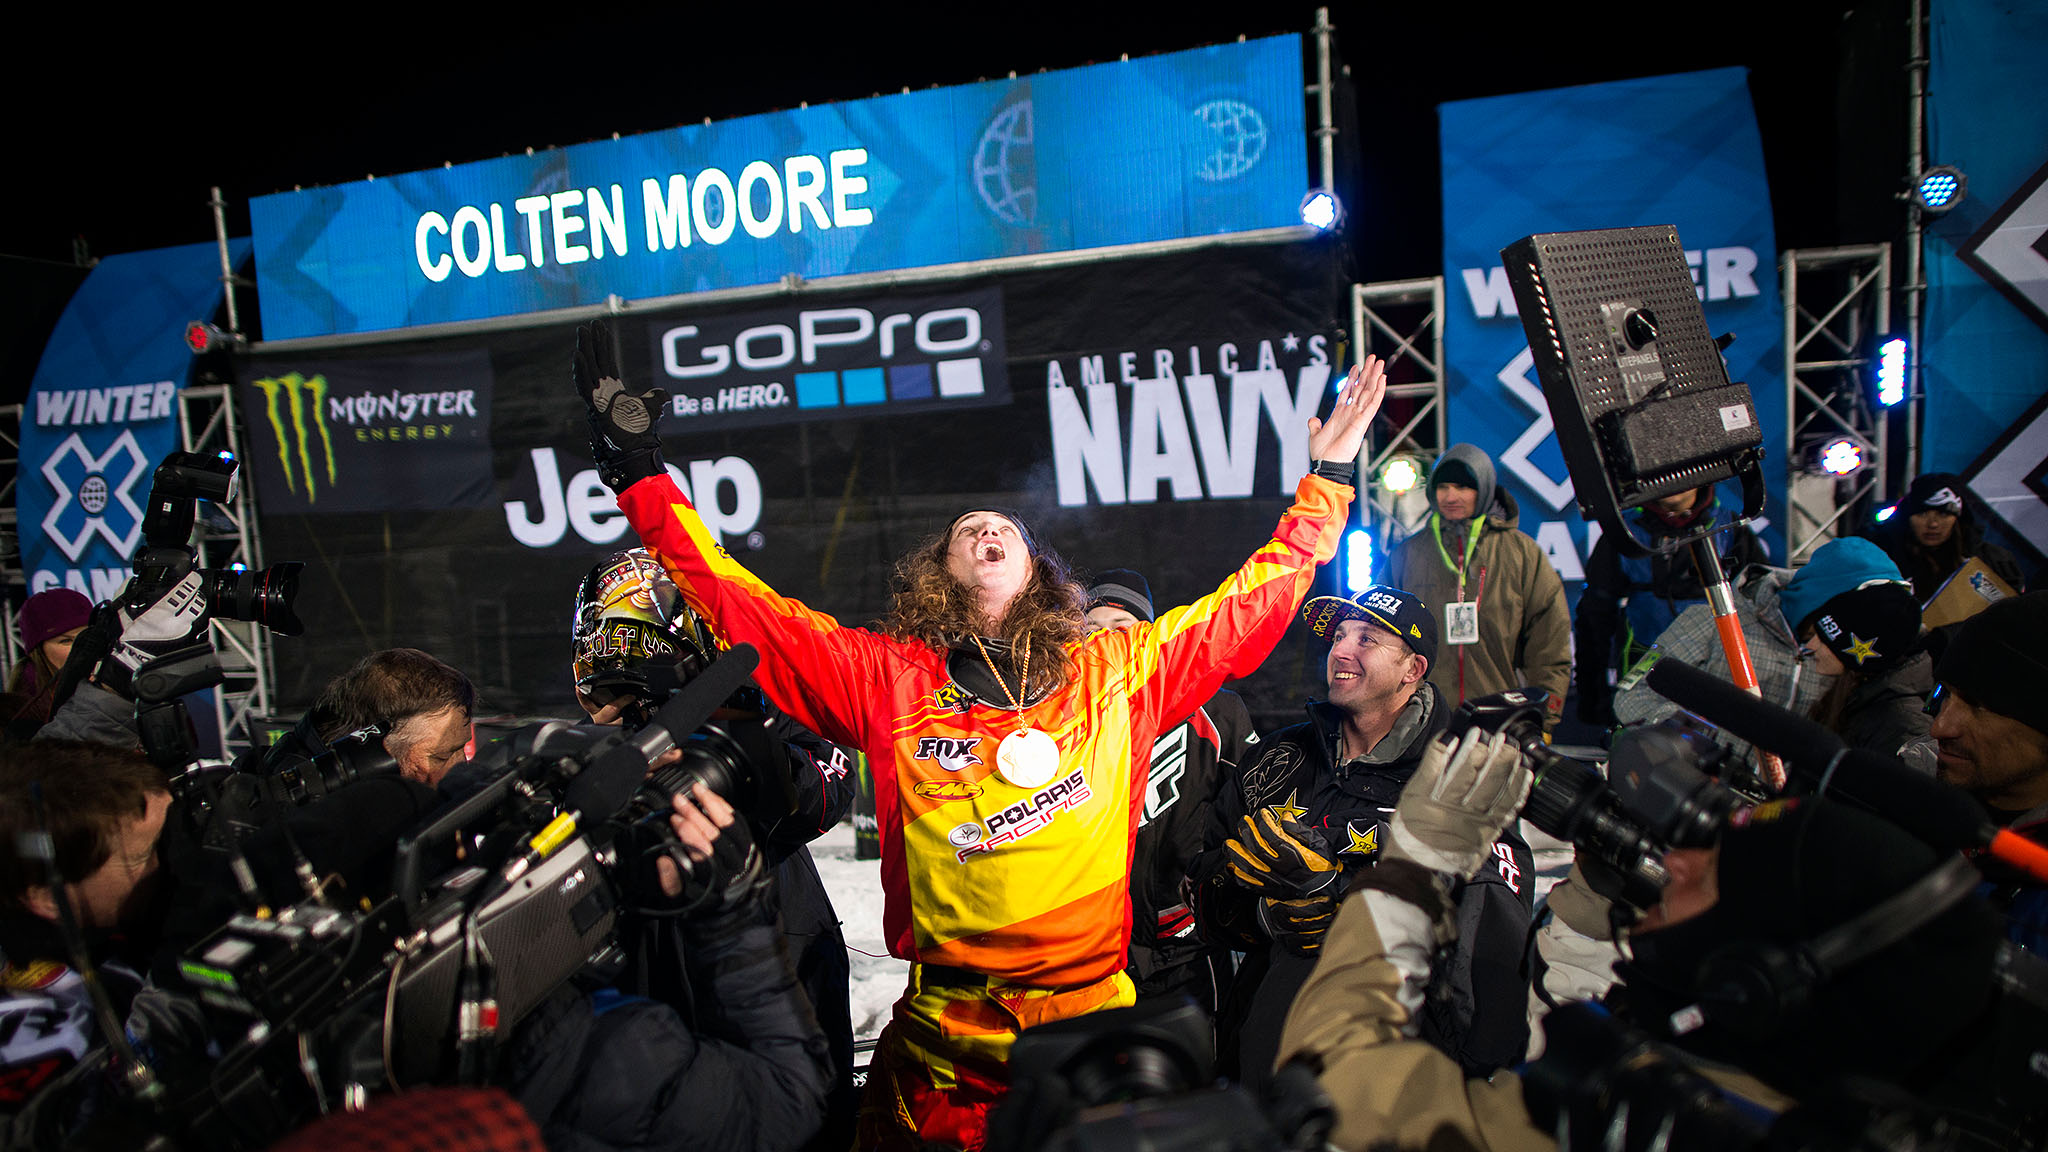 A year after the death of his brother, Caleb, who suffered injuries following a crash in Snowmobile Freestyle at X Games Aspen 2013, Colten Moore returned to X Games Aspen 2014 and said he was going to go out there and ride with Caleb. brbrHe triumphantly finished his first of two runs in first place and retained the lead throughout the remainder of the competition. I just knew that Caleb would be riding with me, said Moore.